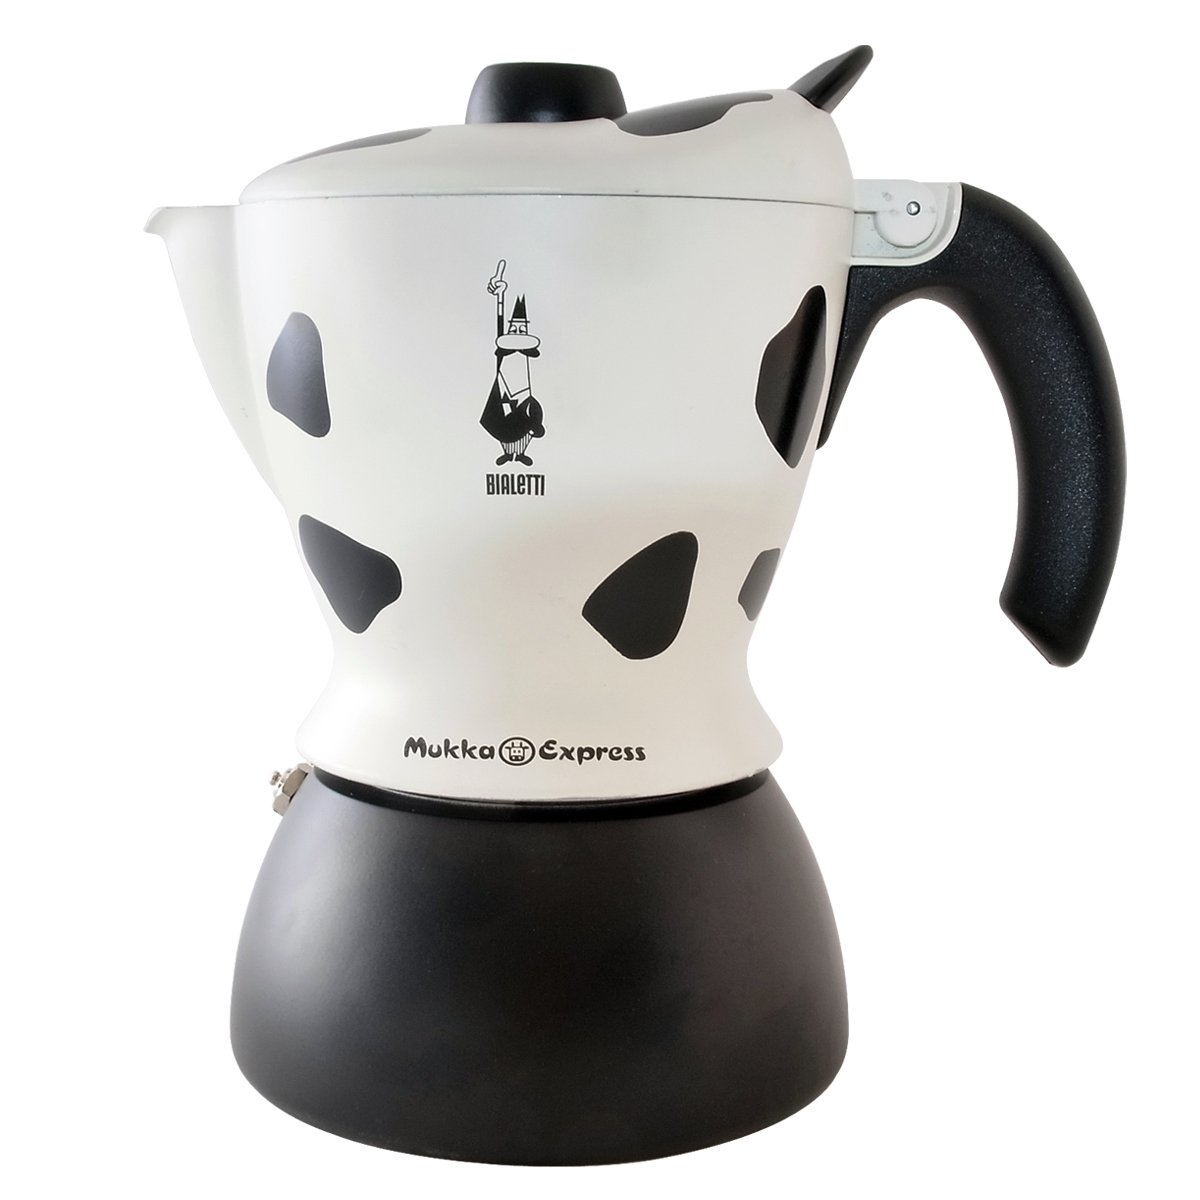 Bialetti Mukka Express 2-Cup Cow-Print Stovetop Cappuccino Maker, Black and White 06989 3418/EXP_schwarz/weiß-21 3x17 5x13